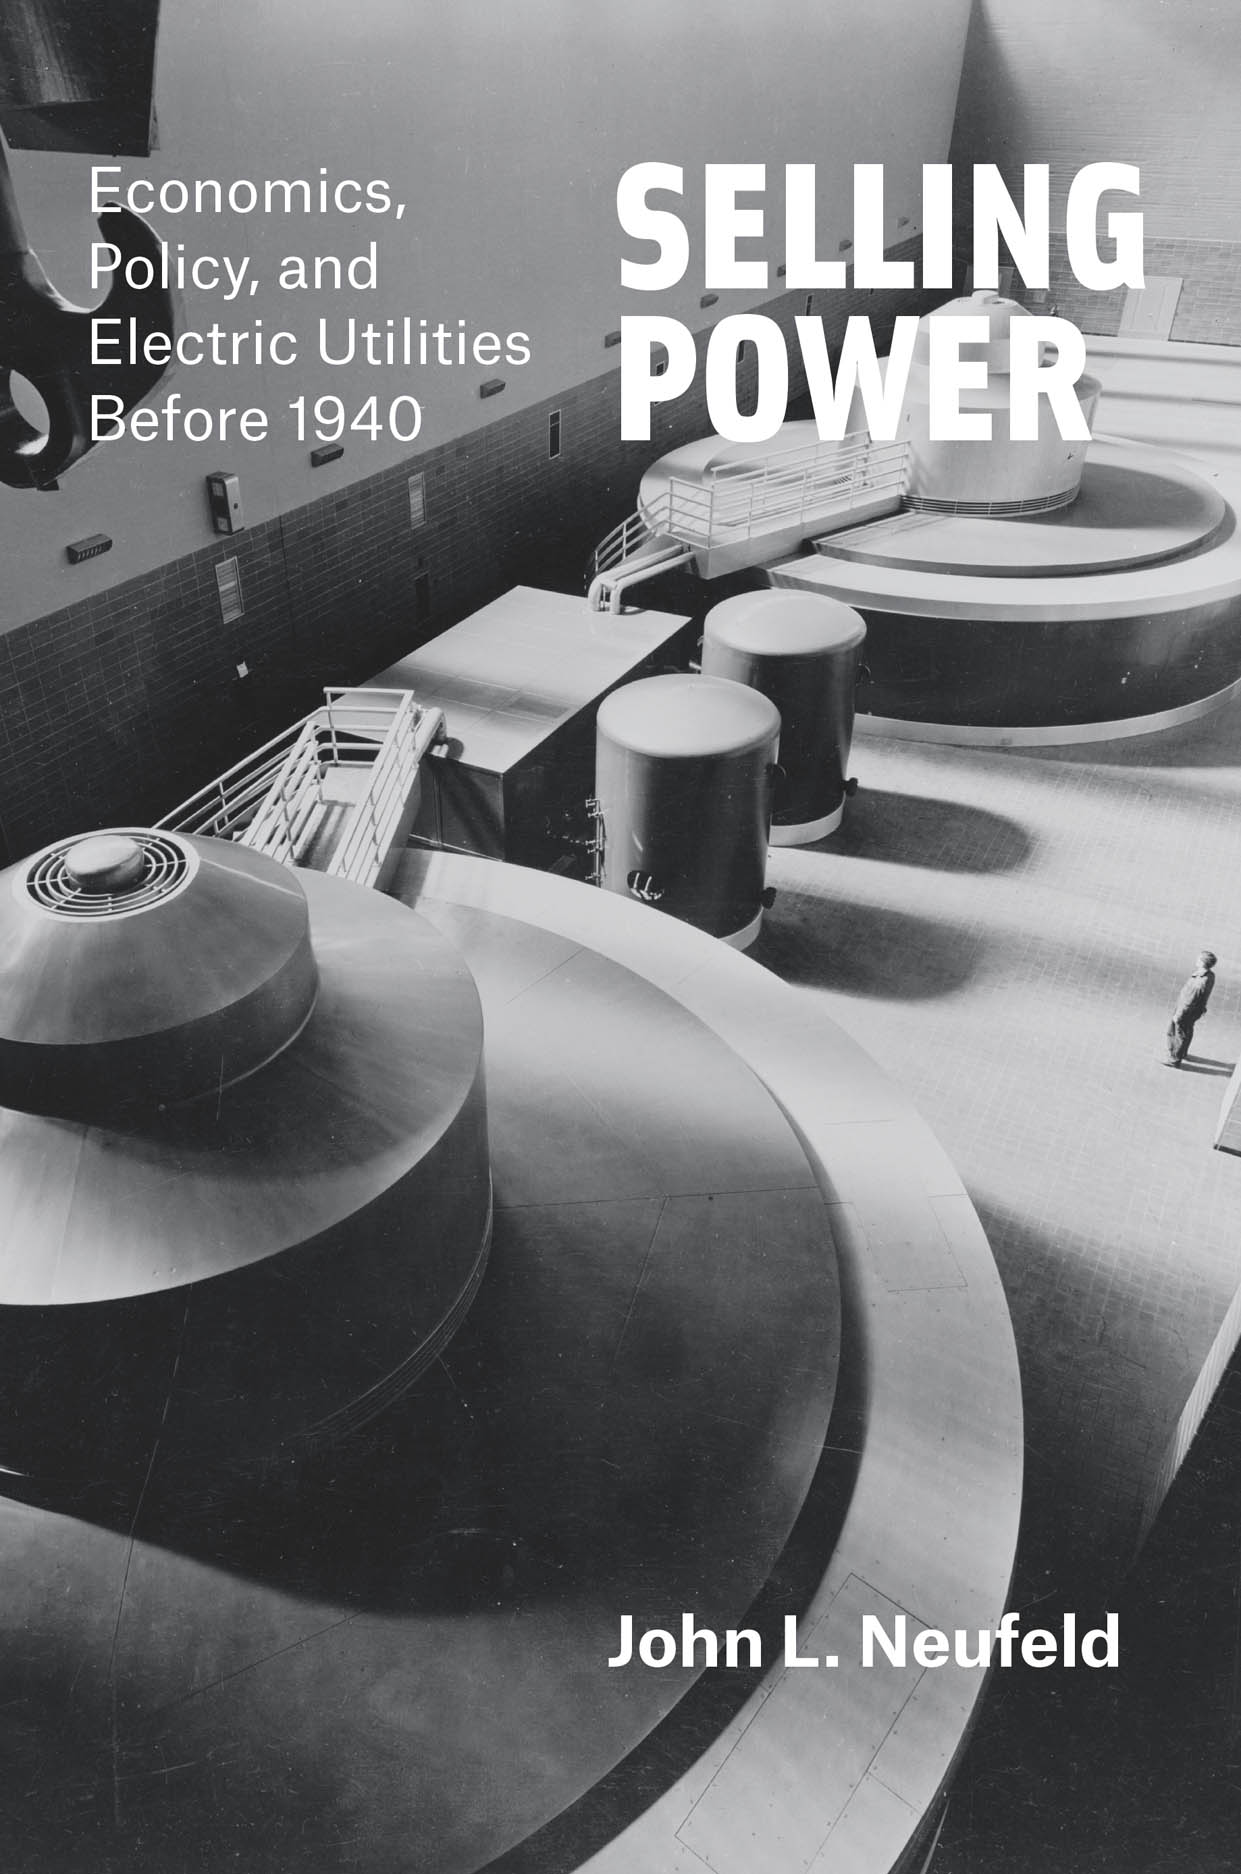 Selling Power: Economics, Policy, and Electric Utilities Before 1940